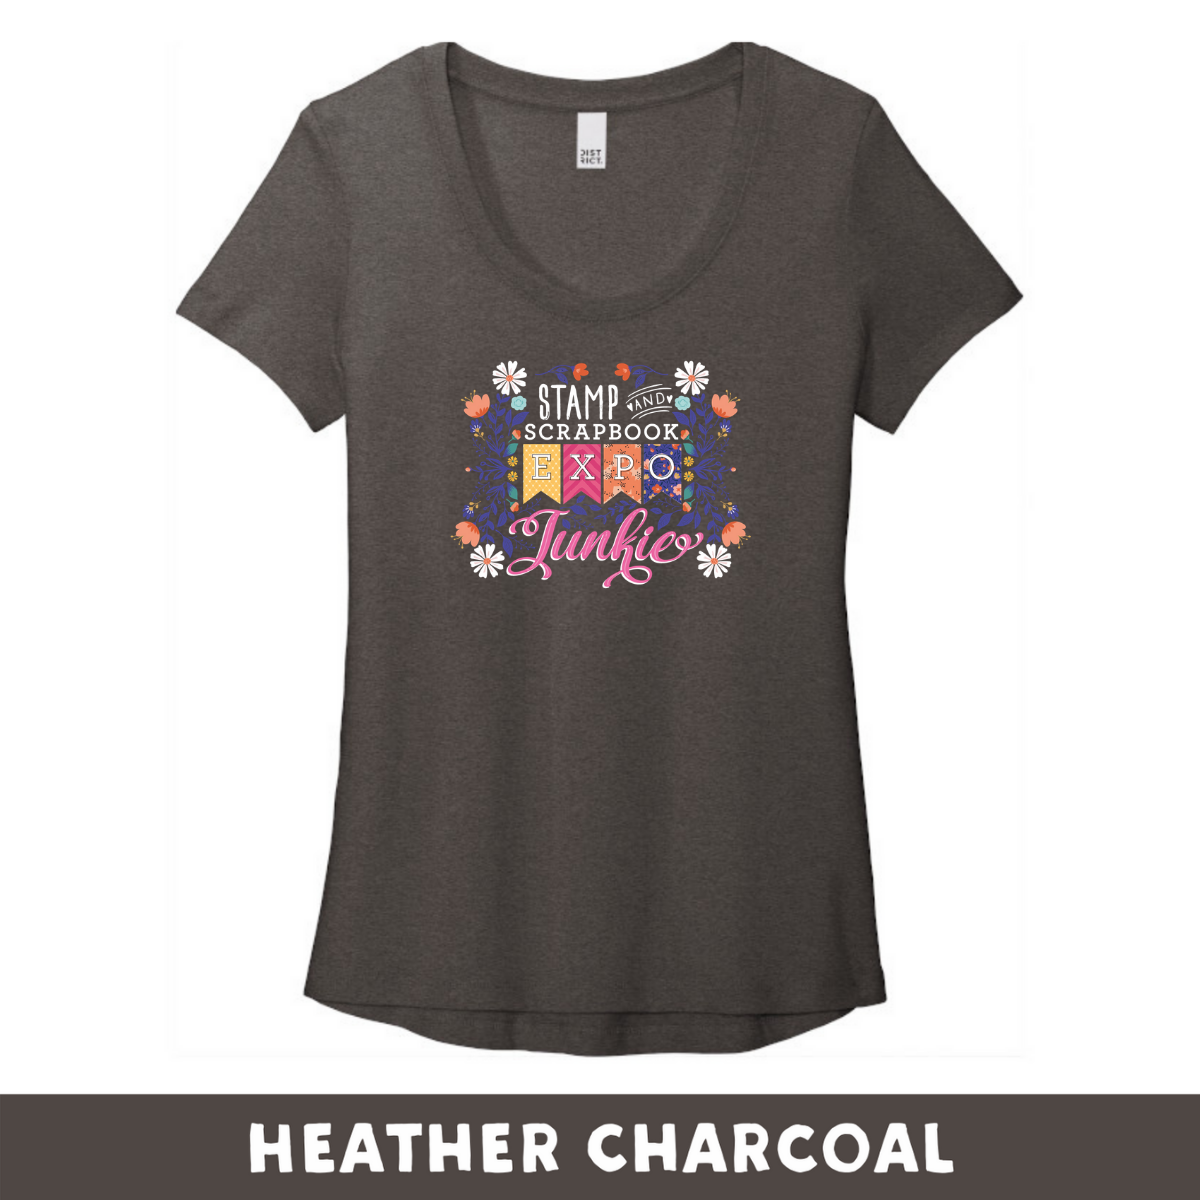 Heather Charcoal -  Woman's Cut Scoop Neck DT7501 - SSBE Junkie With/Flowers